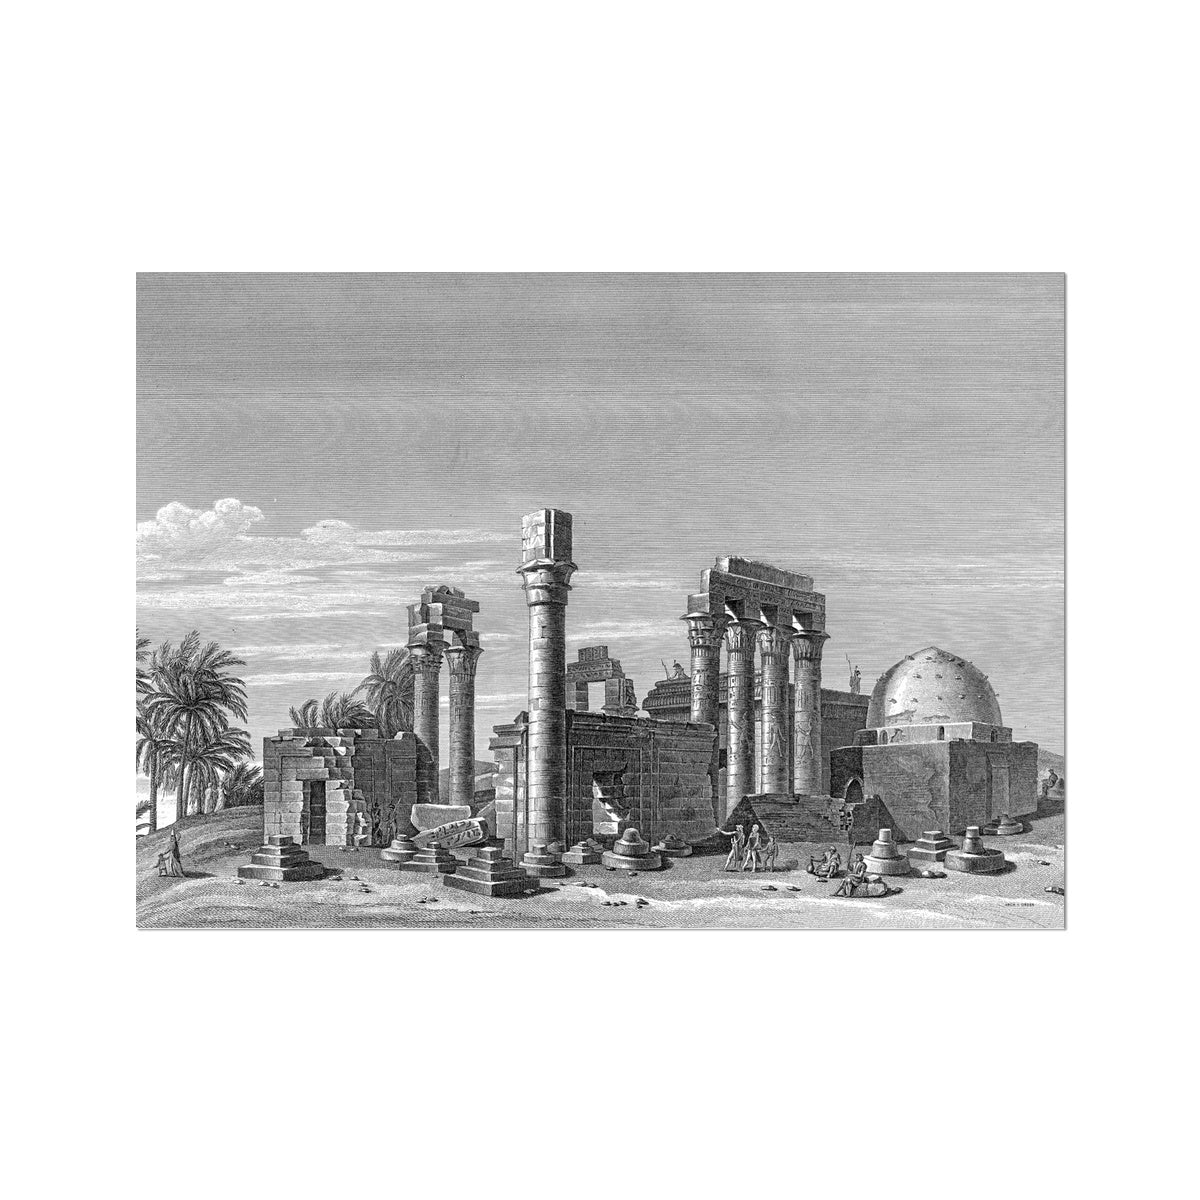 The Temple of Hermonthis Ruins 3 - Armant Egypt -  Etching Paper Print